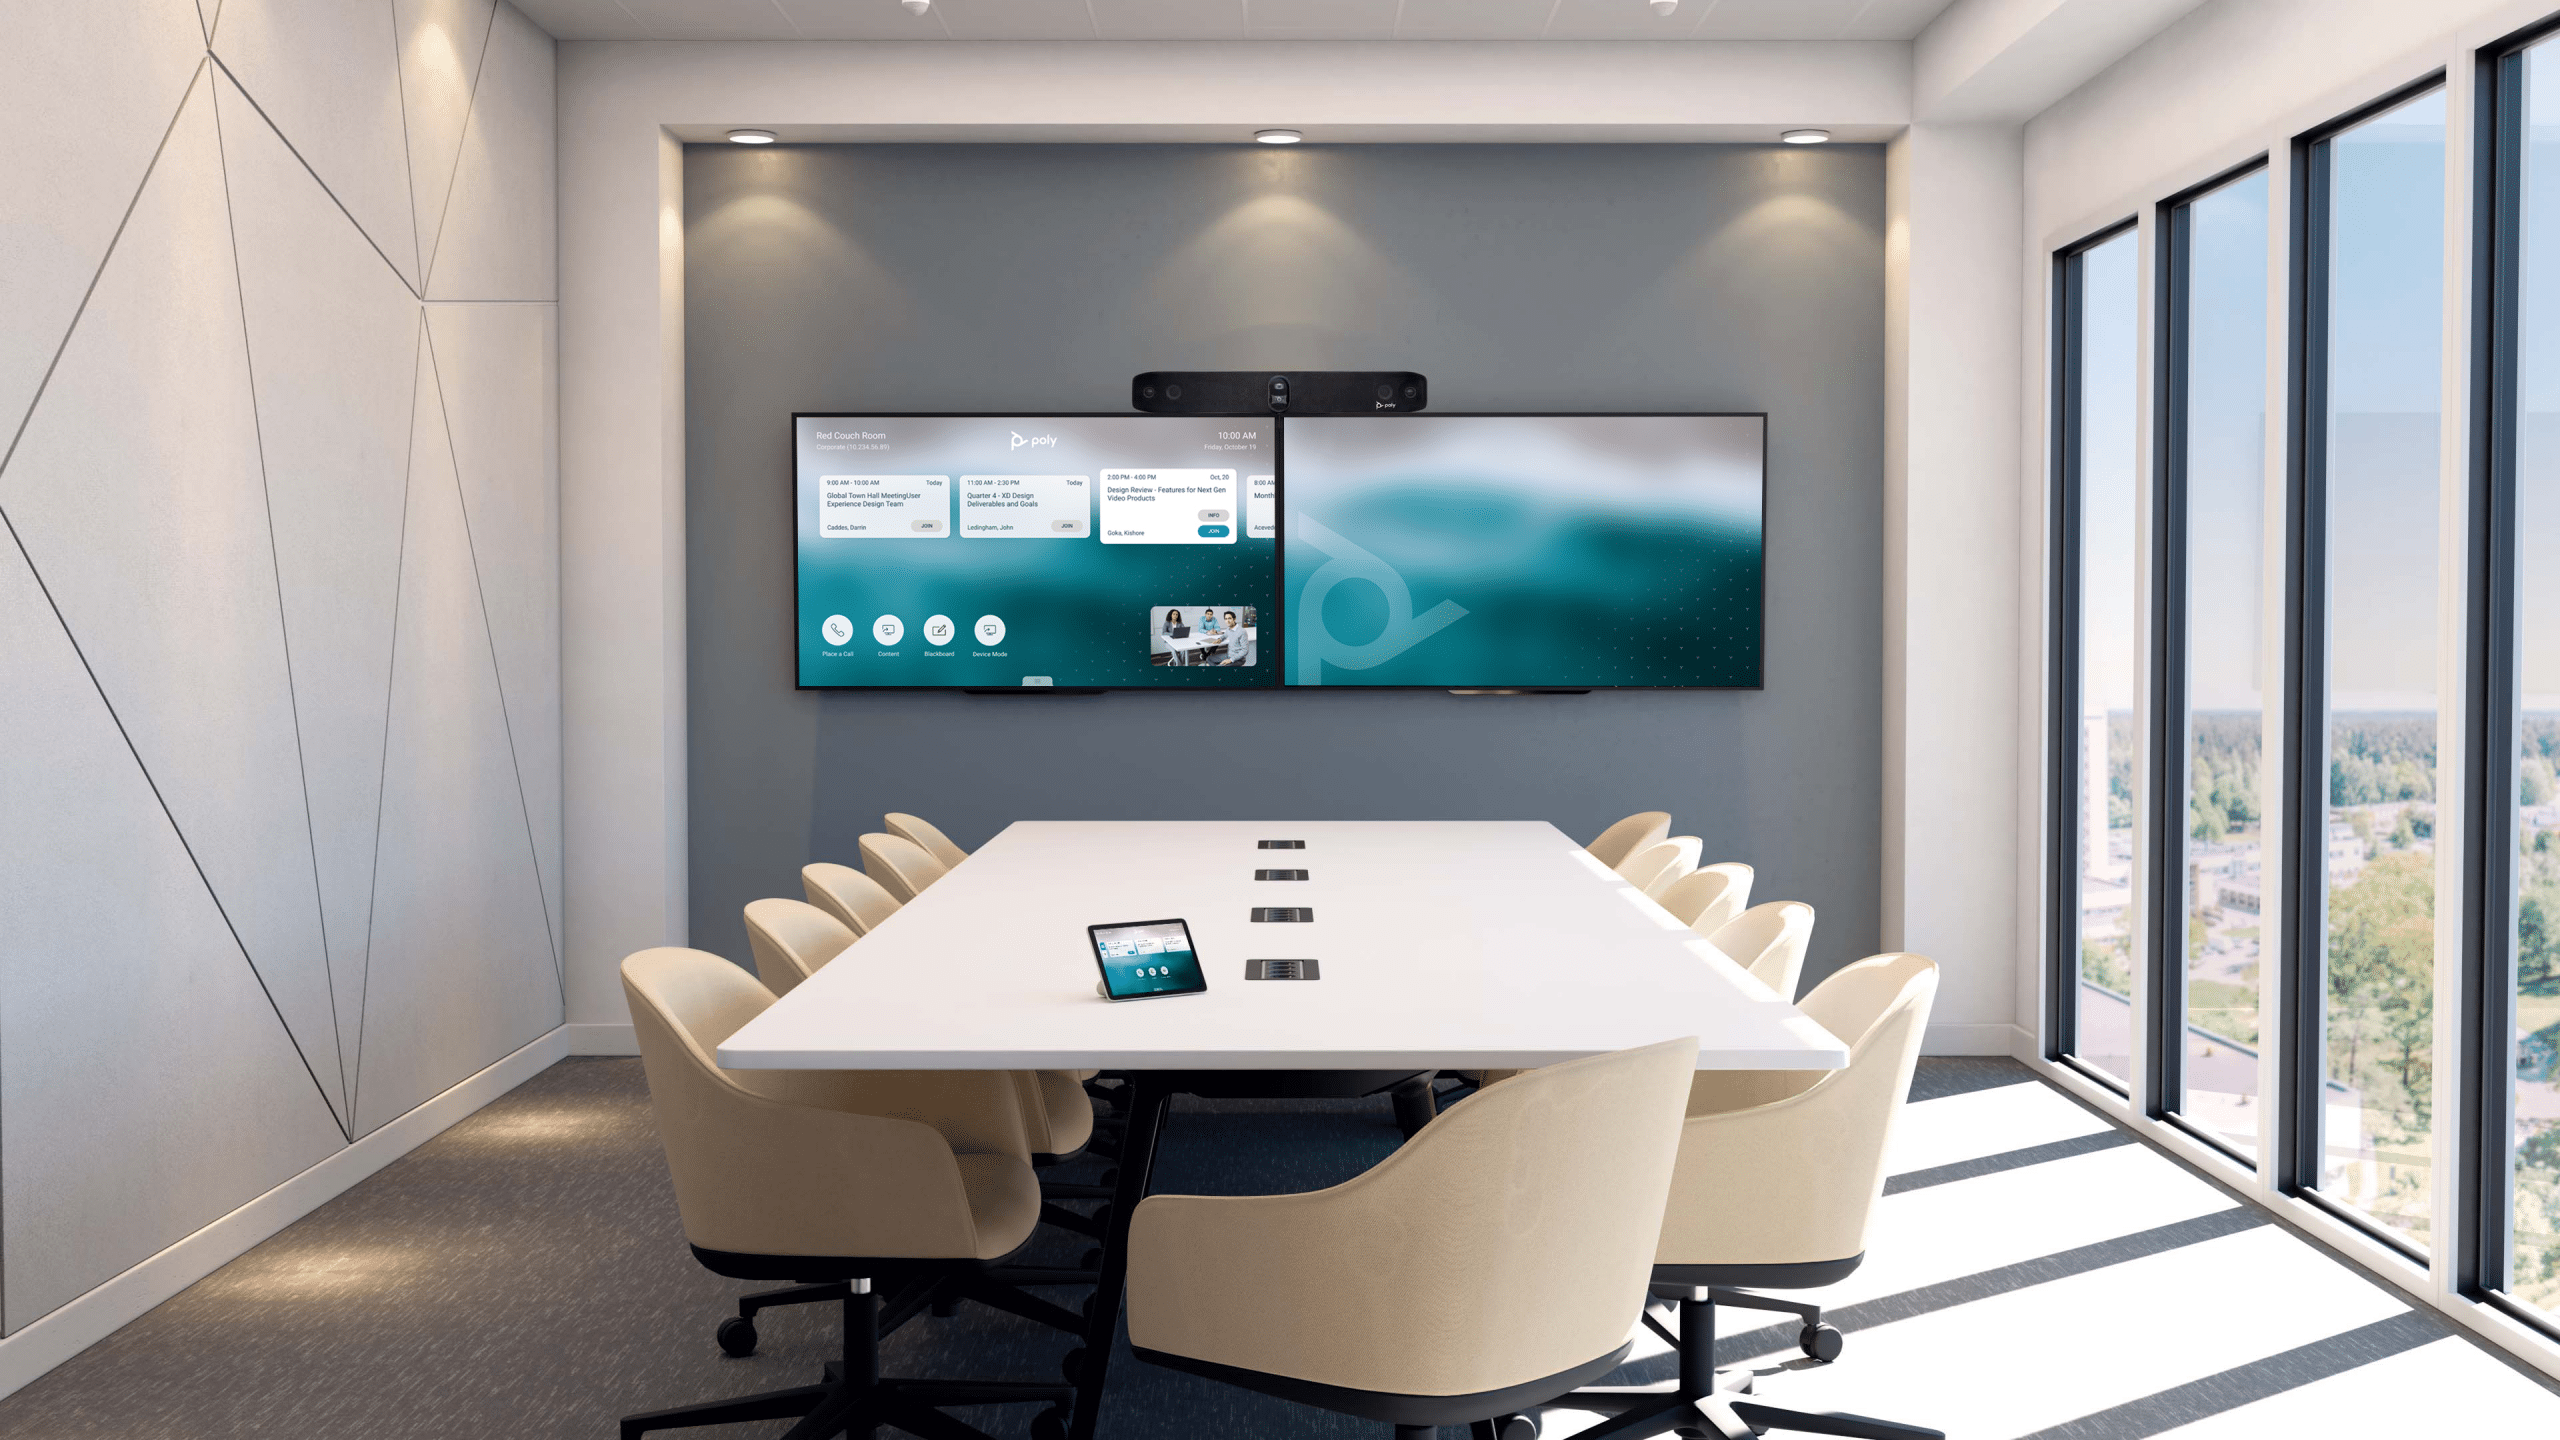 The New Poly Studio X70 – Poly's Big Upgrade For Large Rooms